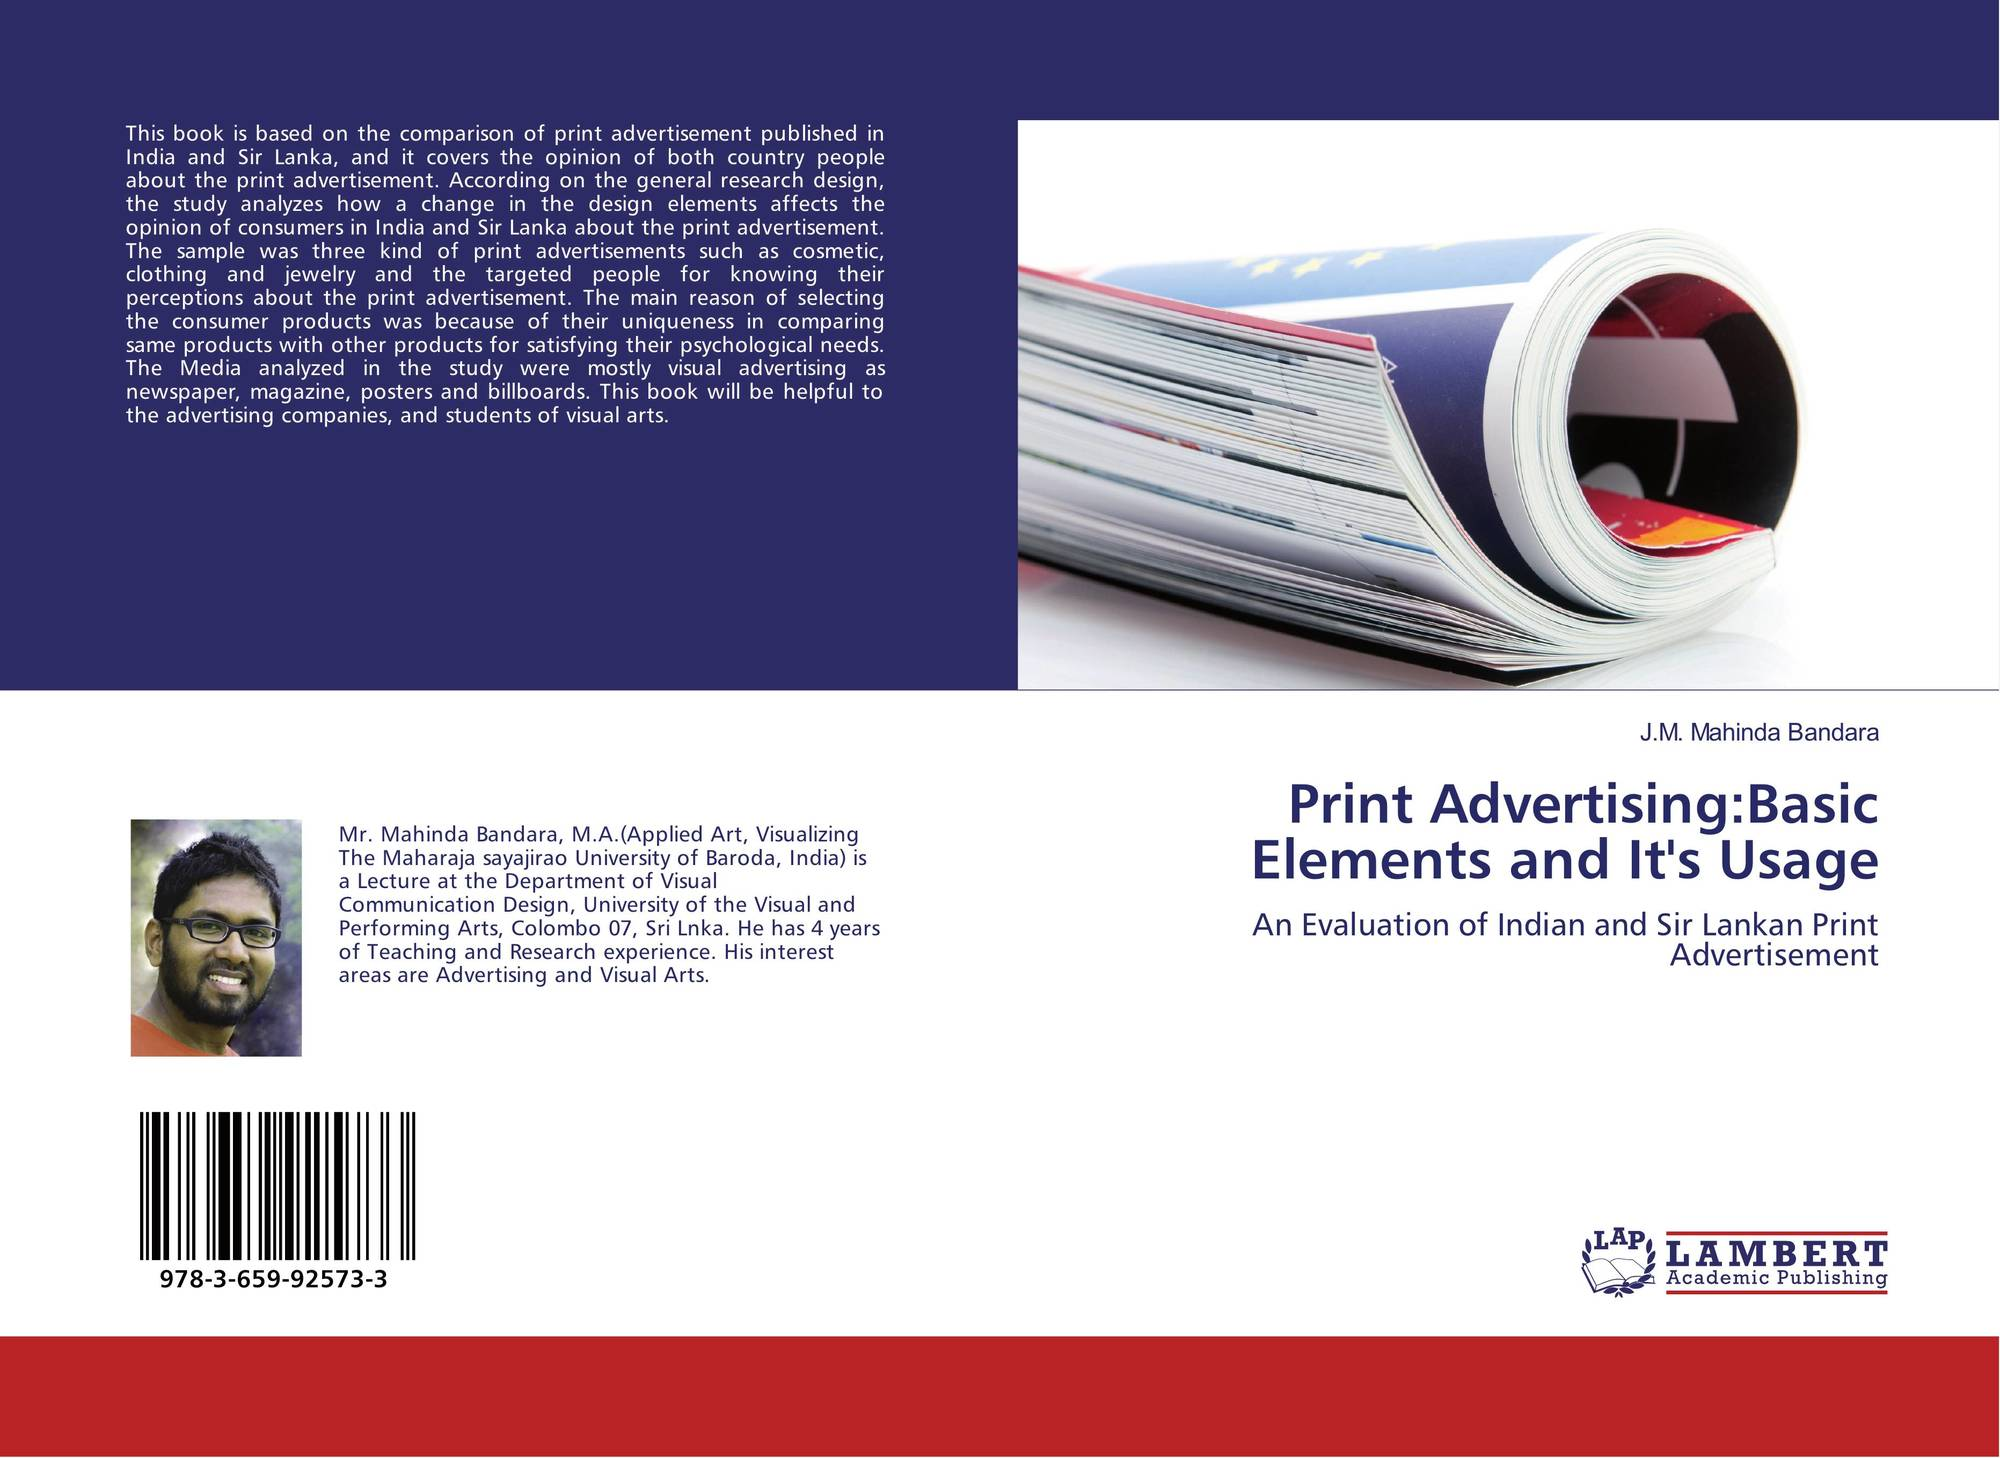 compare the element in advertisement